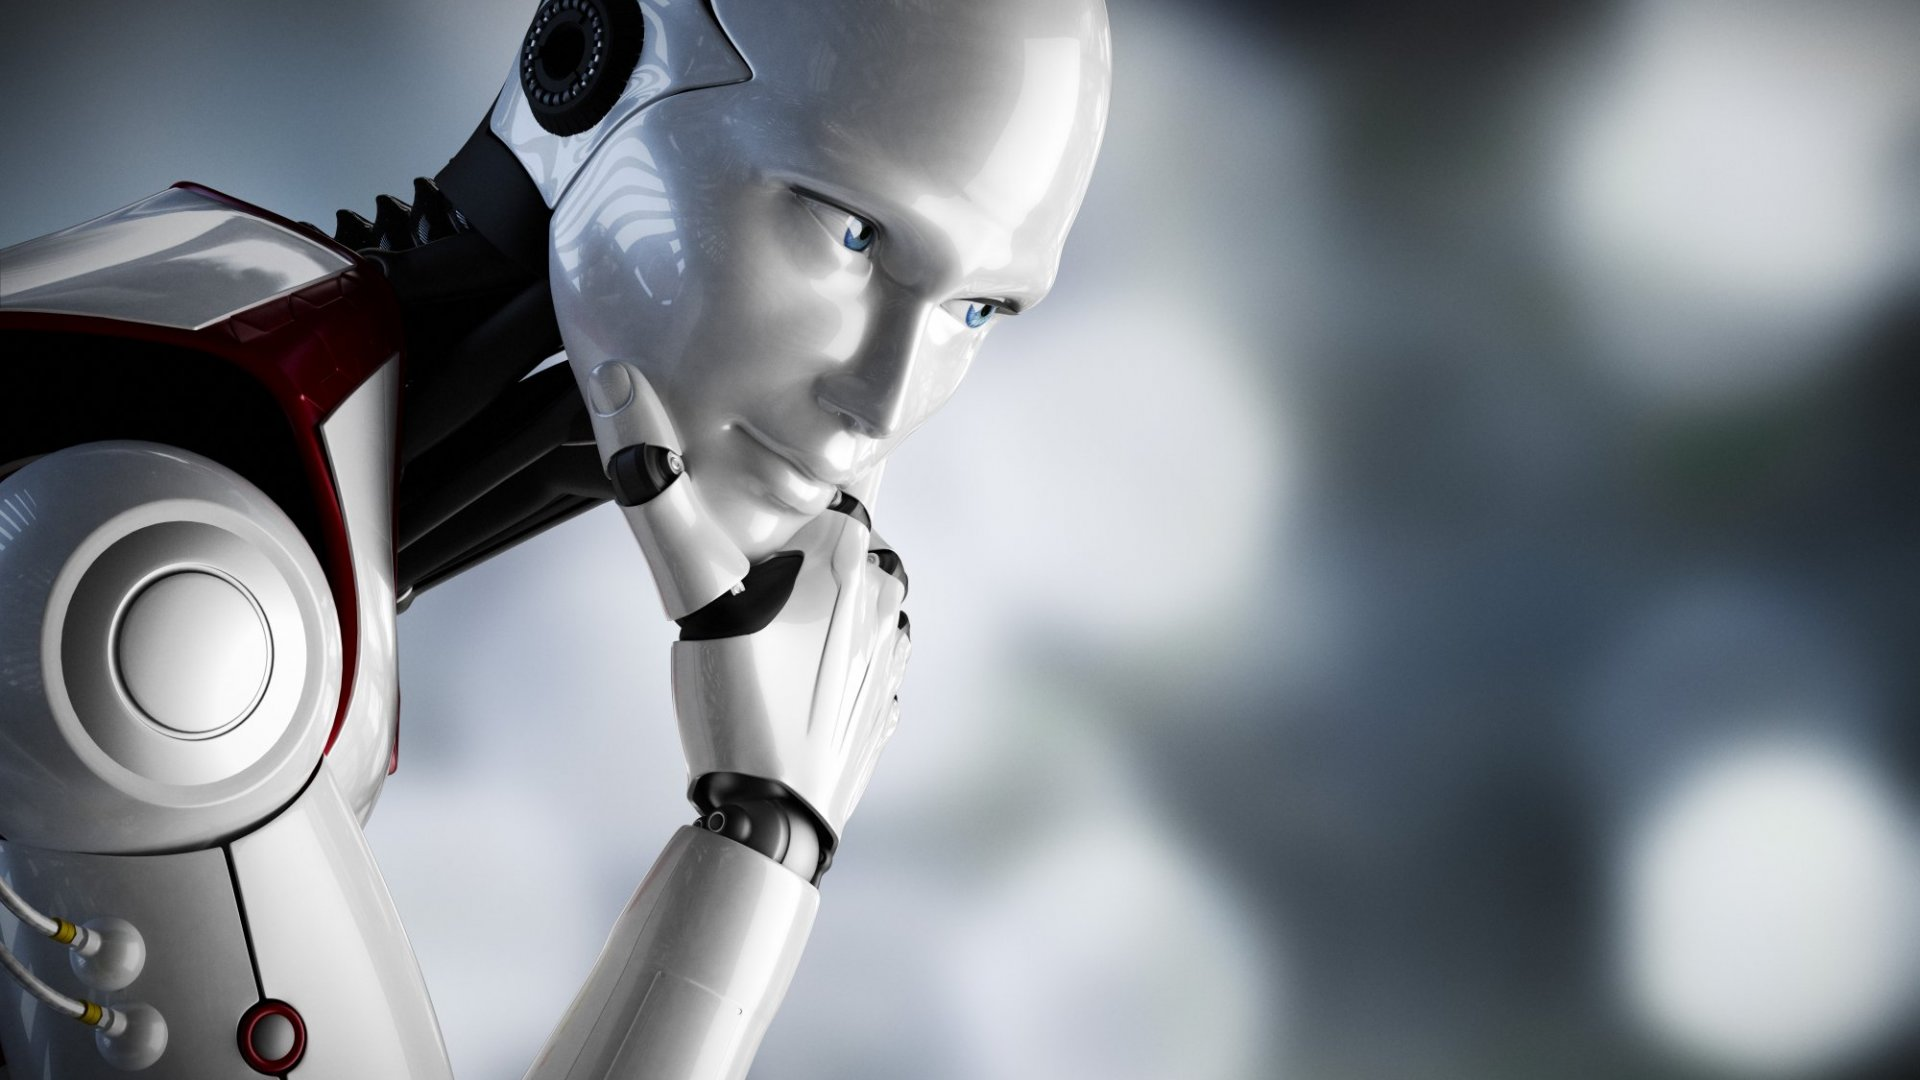 2017 Is the Year of Artificial Intelligence